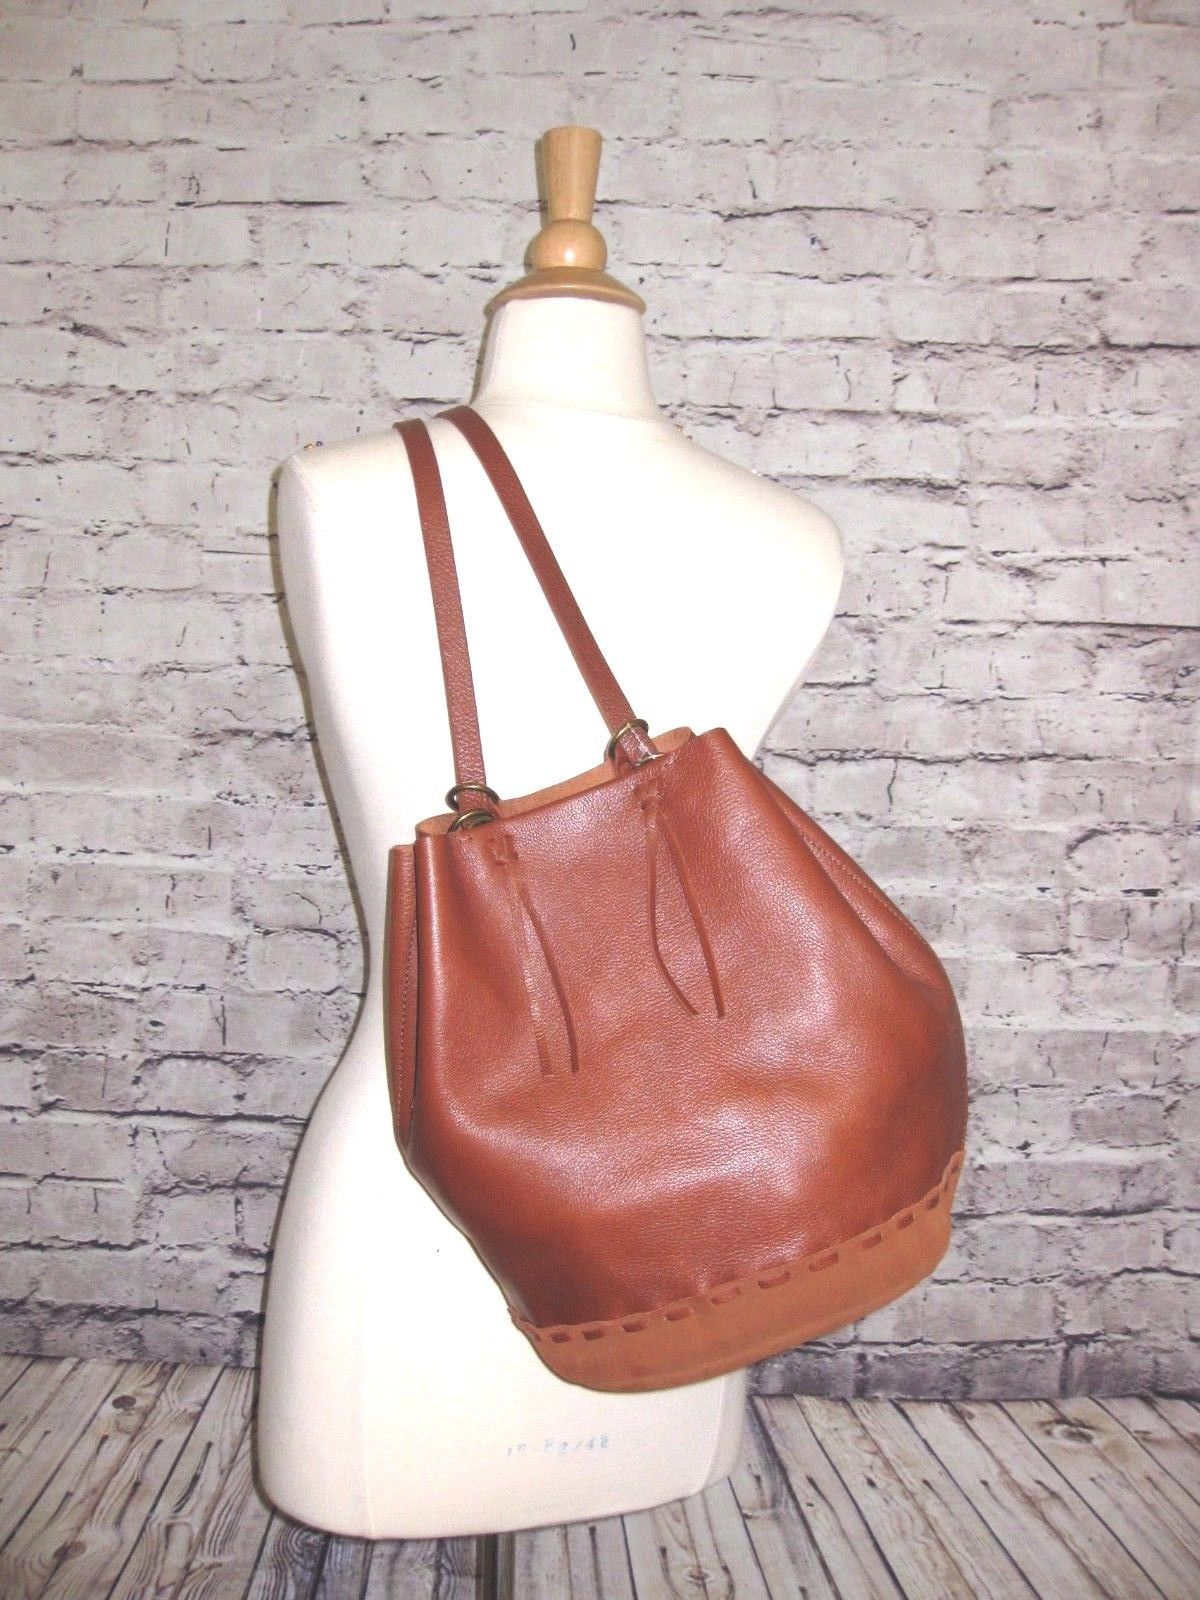 d71dda8f36 MADEWELL J CREW THE MARIN CONVERTIBLE BACKPACK NWT  F2360 BAG MESSENGER in  Clothing